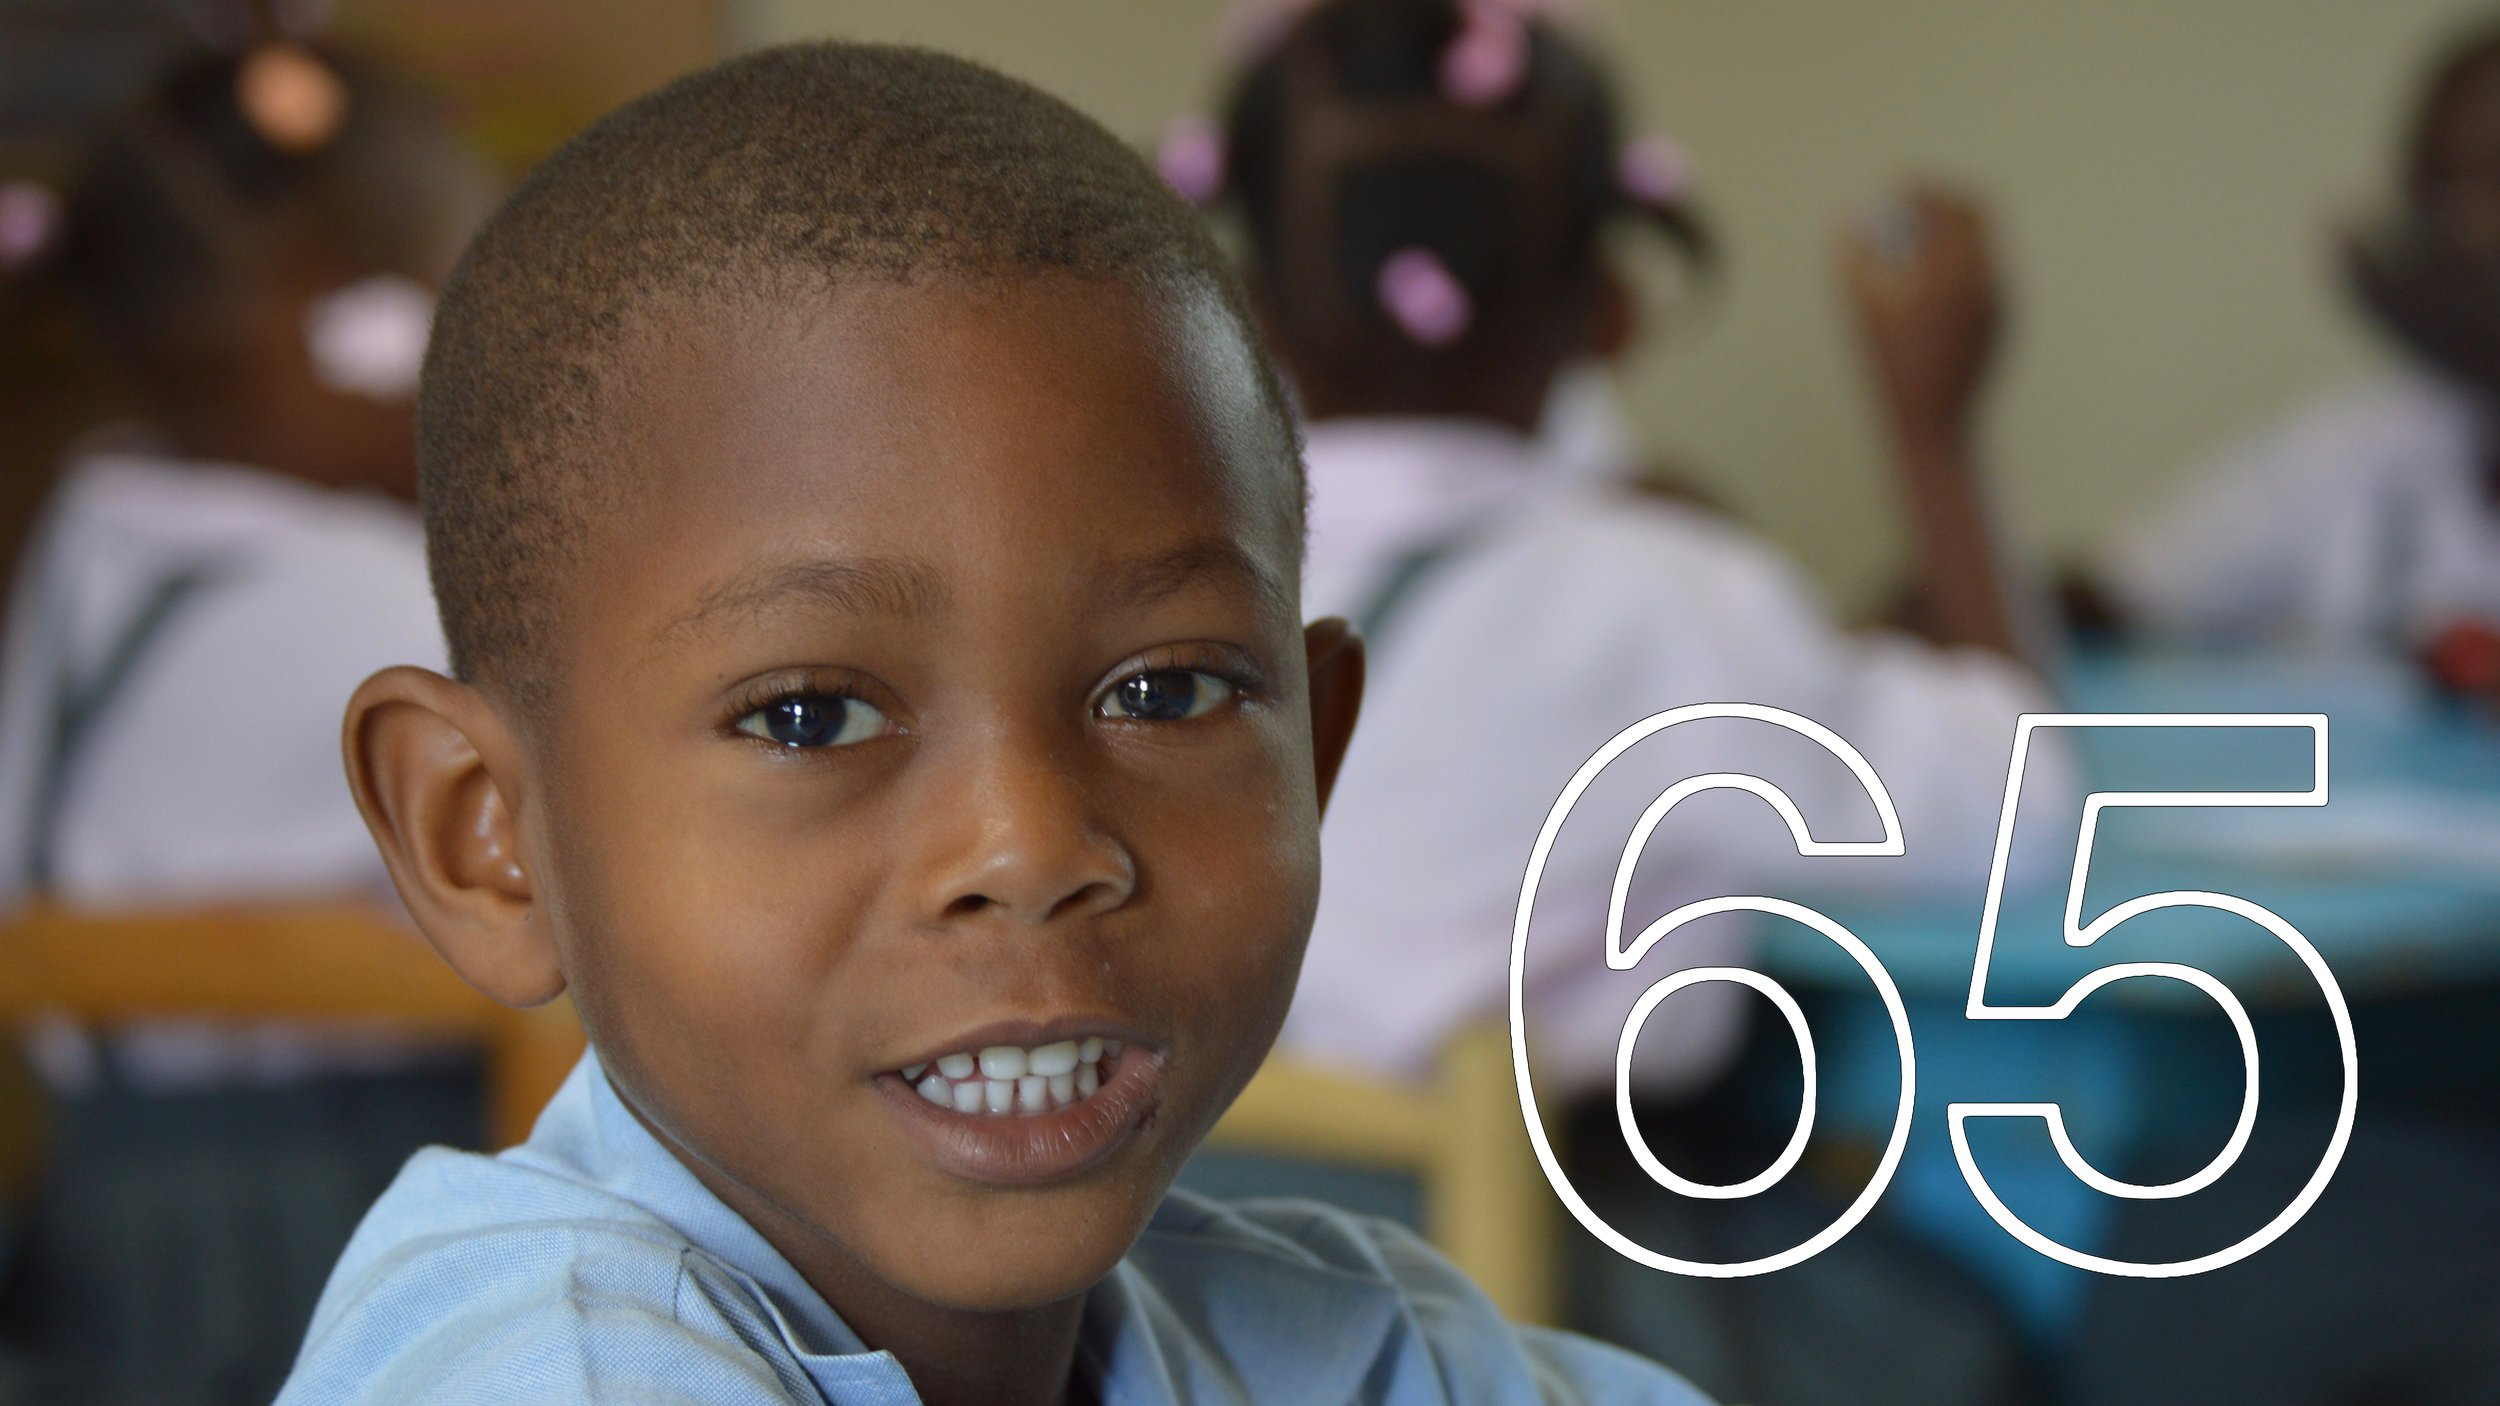 Wiskenley, Kindergarten 3 Student (2016-17)  65 SPONSORS MADE A YEAR FULL OF LEARNING, LAUGHING, AND HOPE THROUGH EDUCATION POSSIBLE FOR 90 STUDENTS.